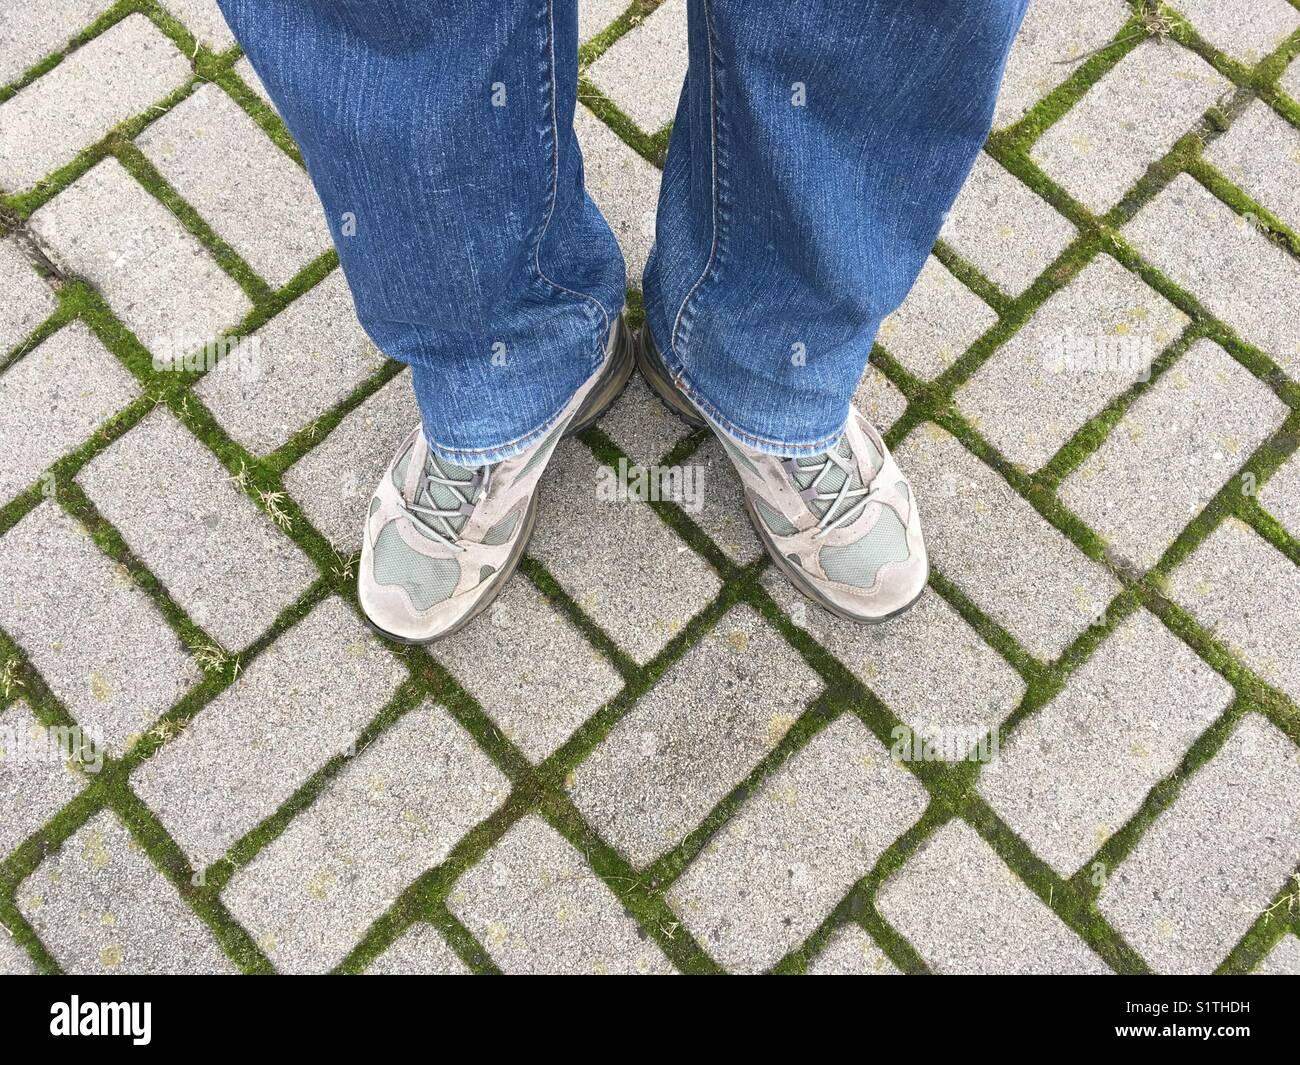 Human feet wearing sneakers standing on a pavement - Stock Image